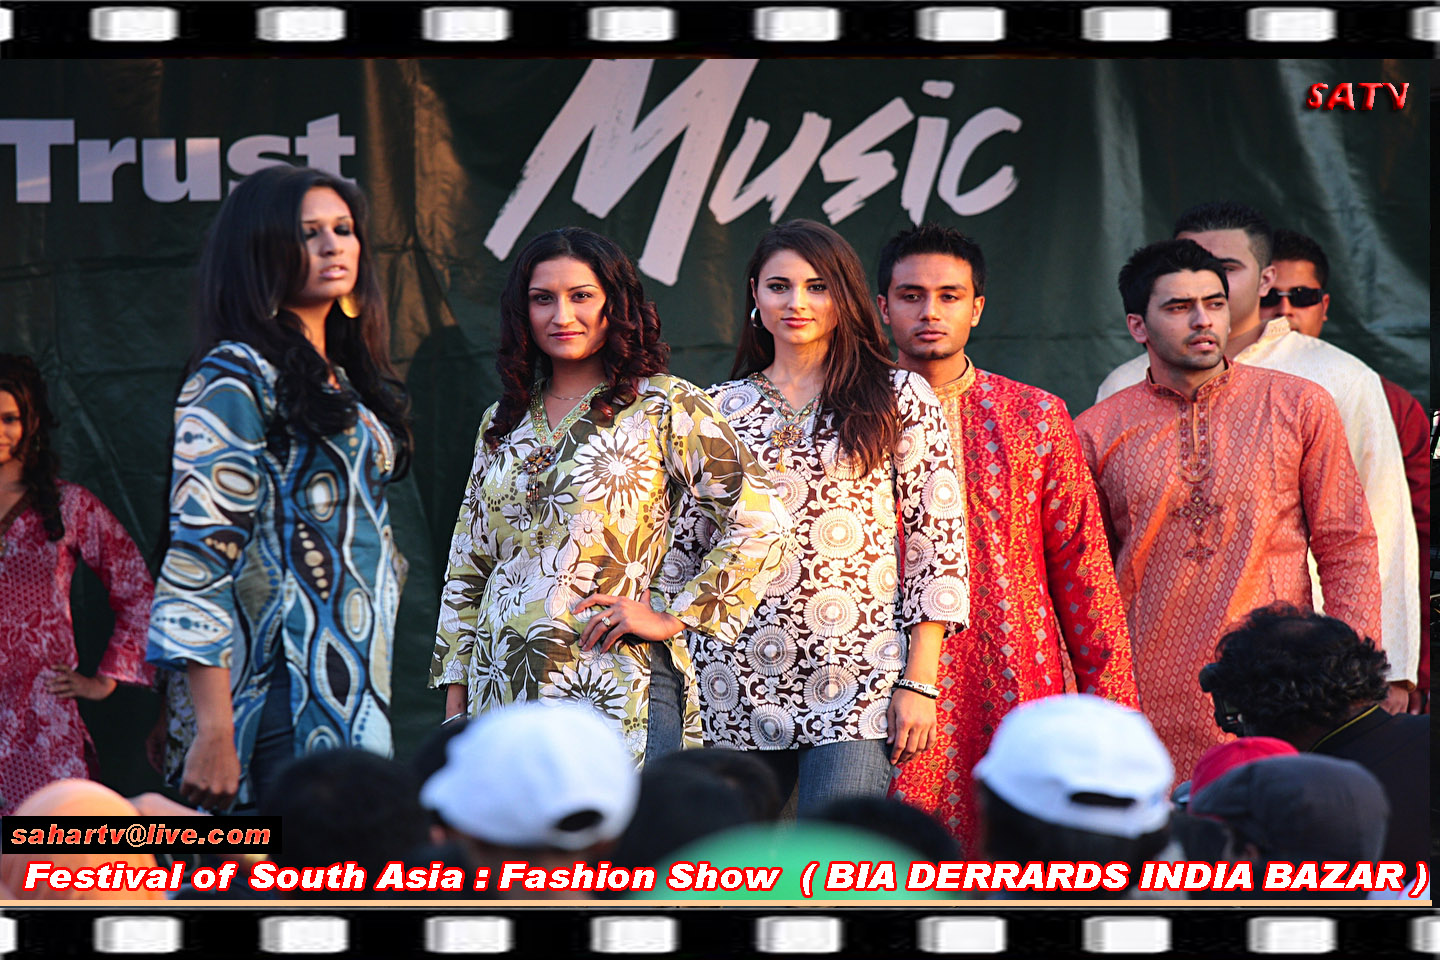 South Asian Community Fashion Show